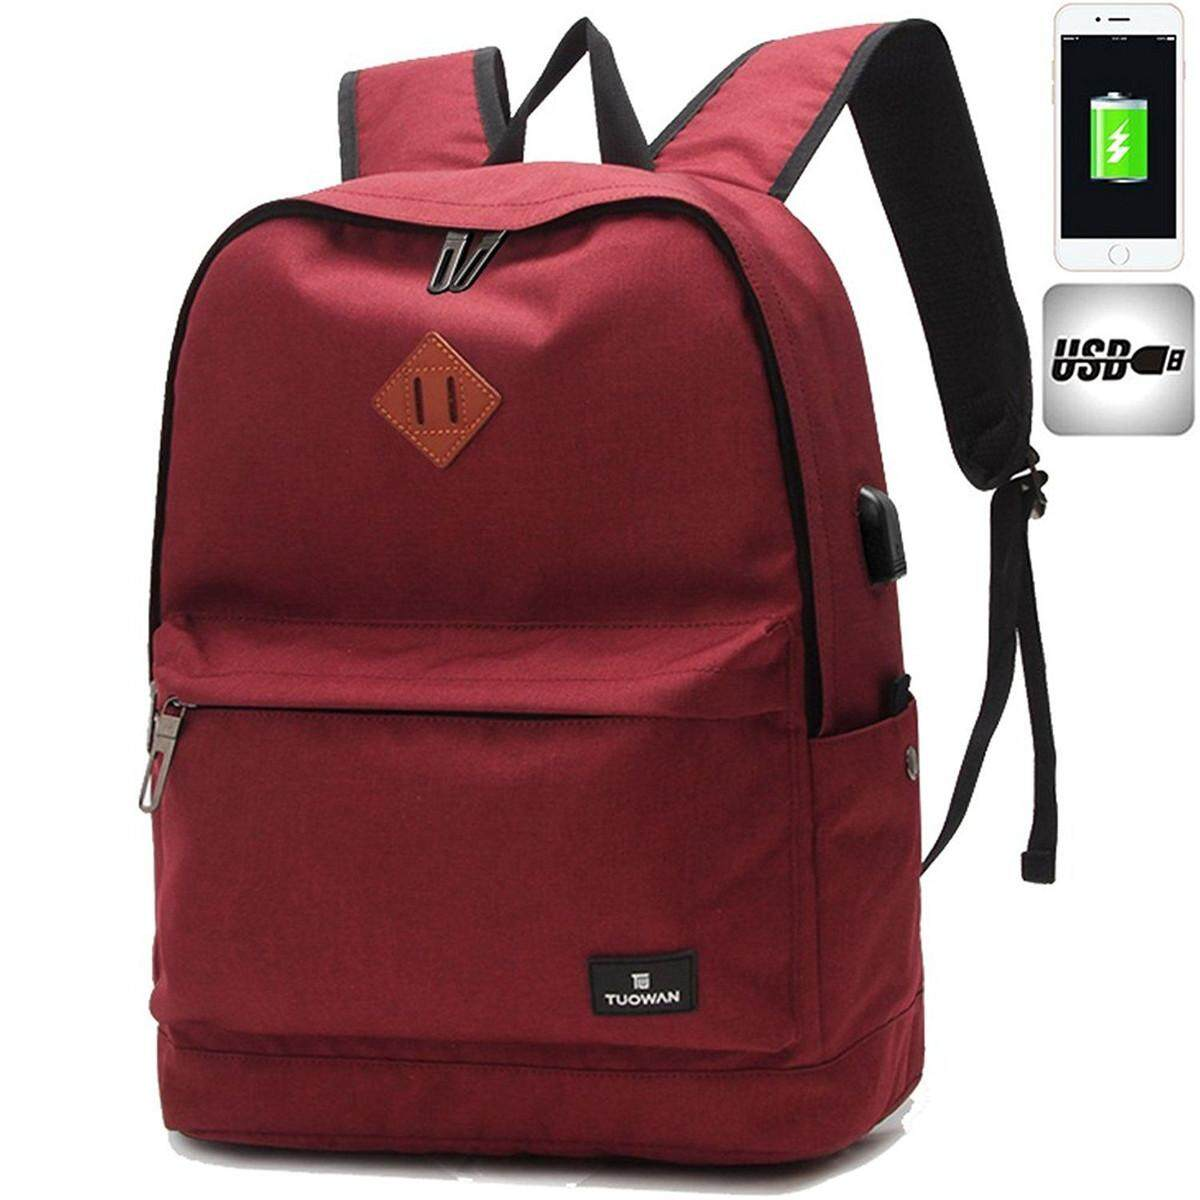 Men Women Usb Charging Oxford Backpack School Rucksack Casual Travel Laptop Bag Red By Moonbeam.